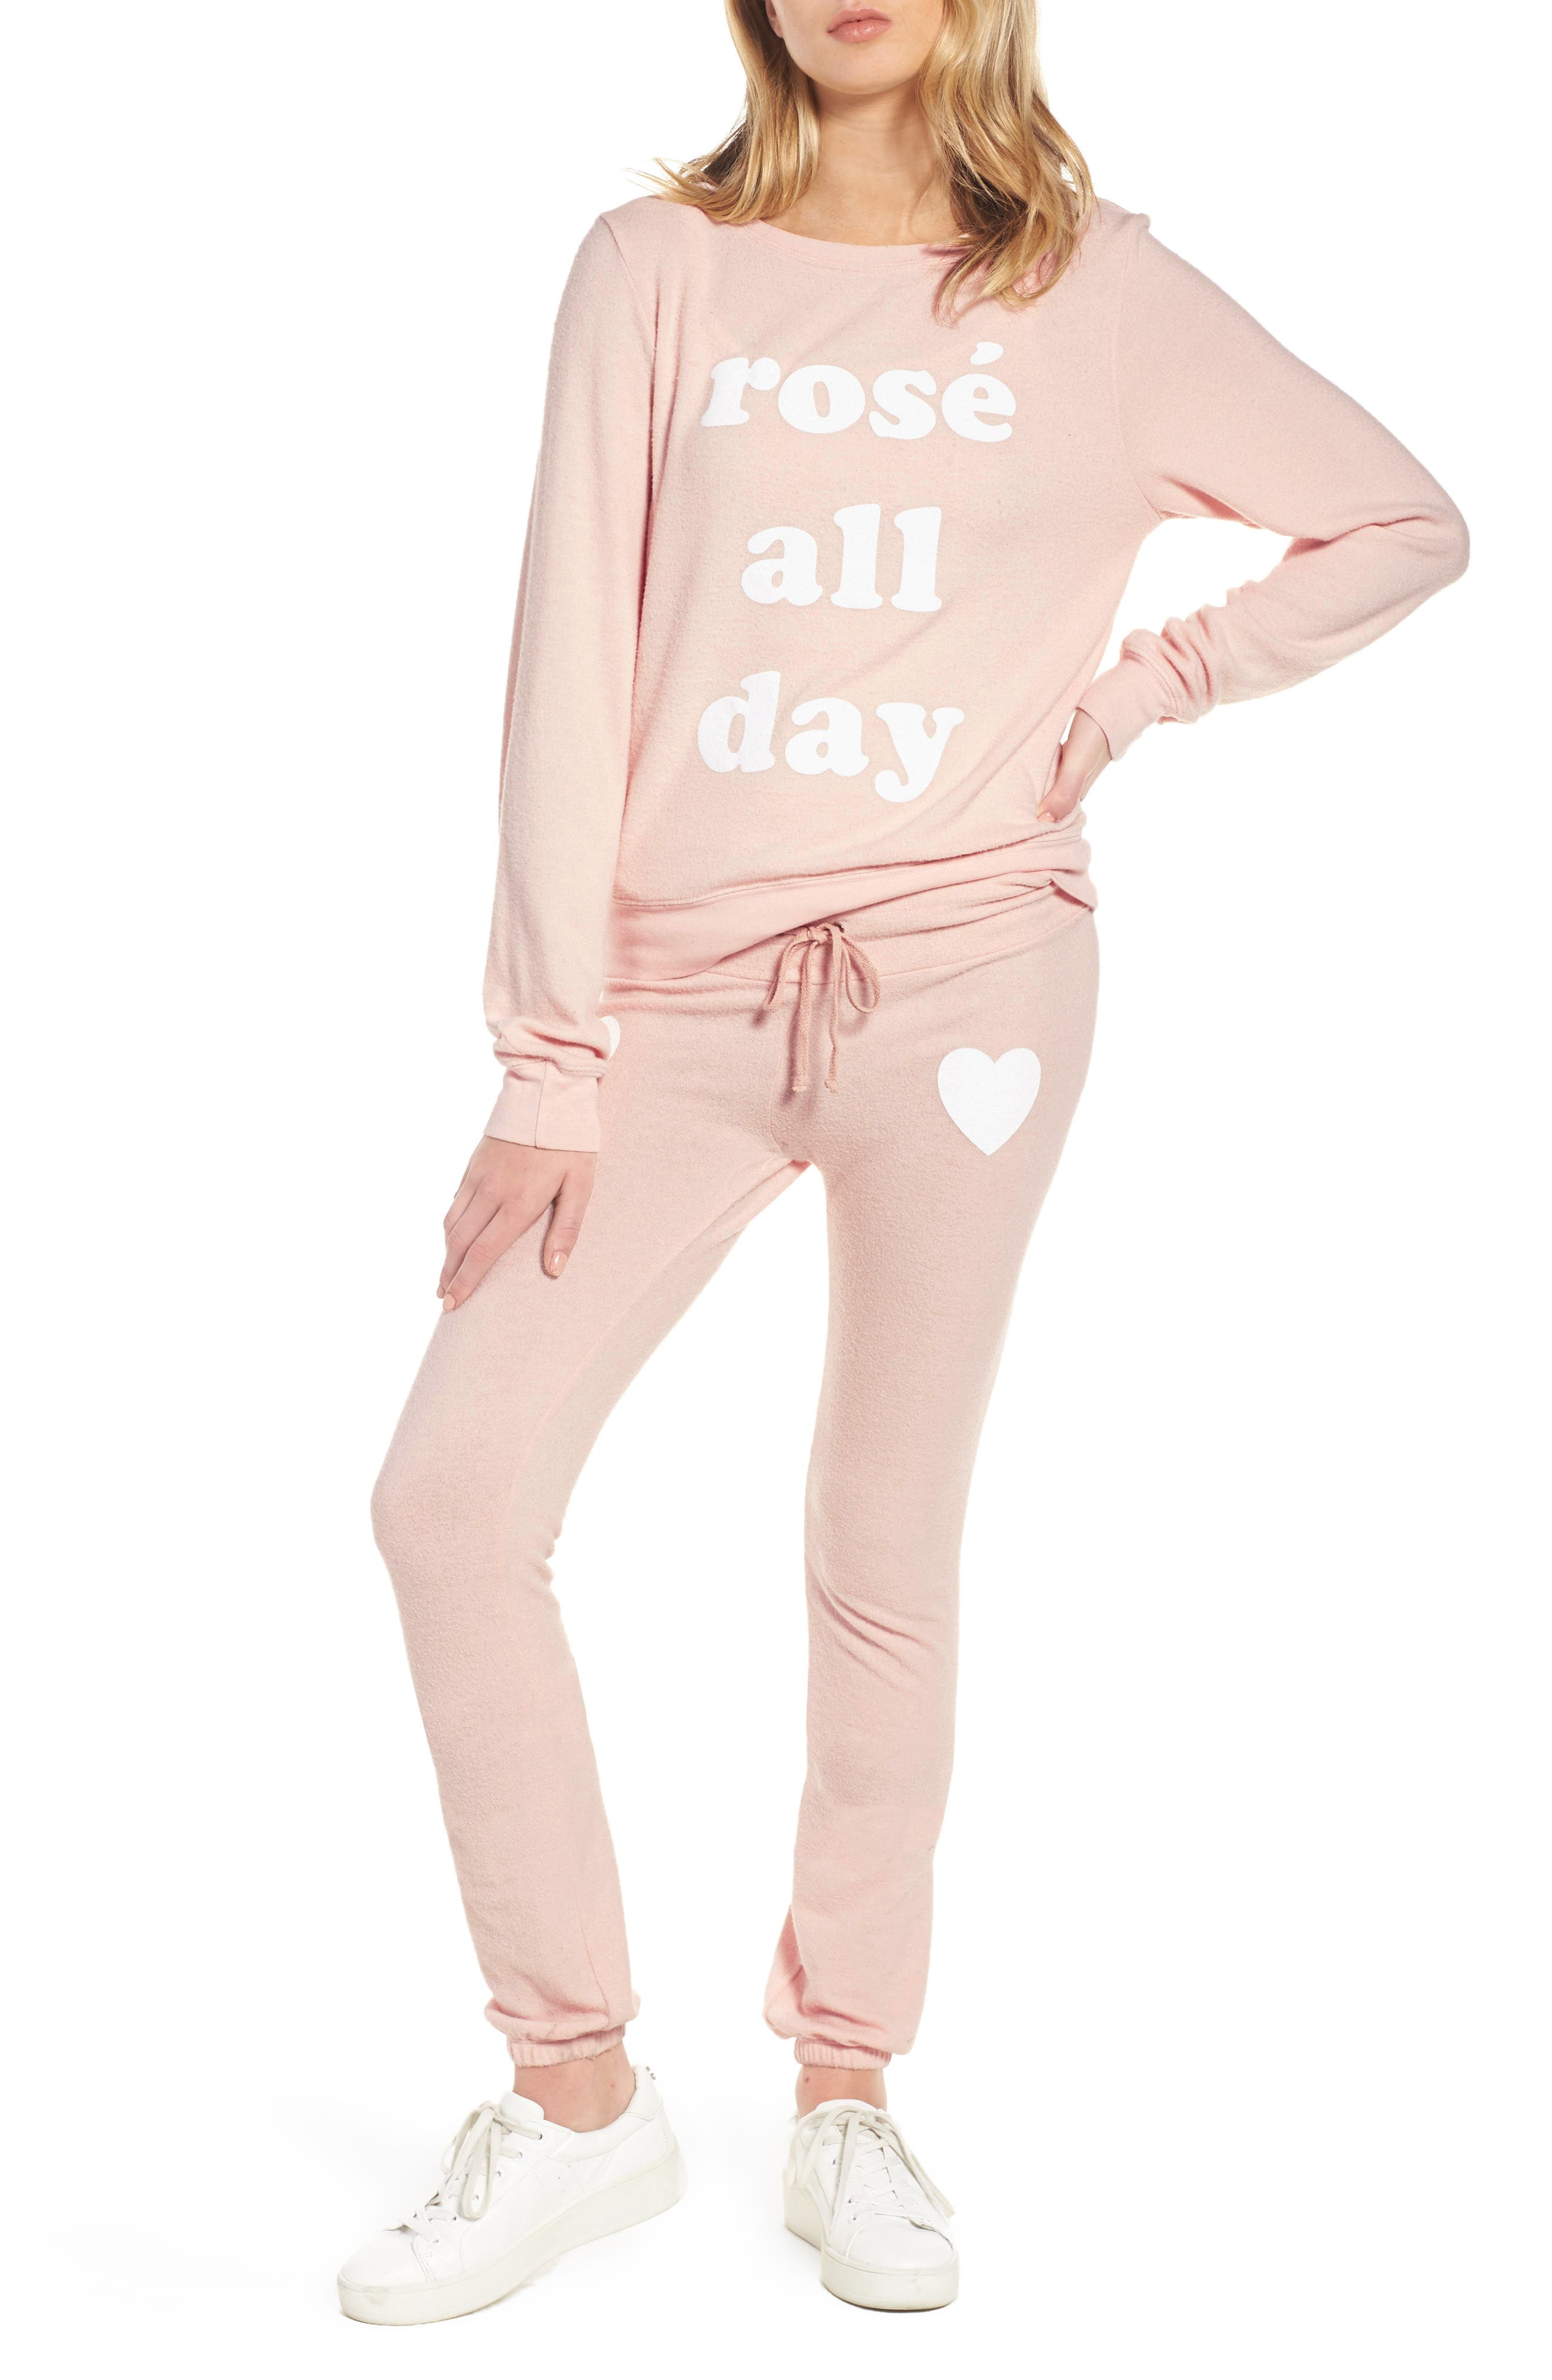 Rosé All Day Skinny Pants,                             Alternate thumbnail 2, color,                             Rose